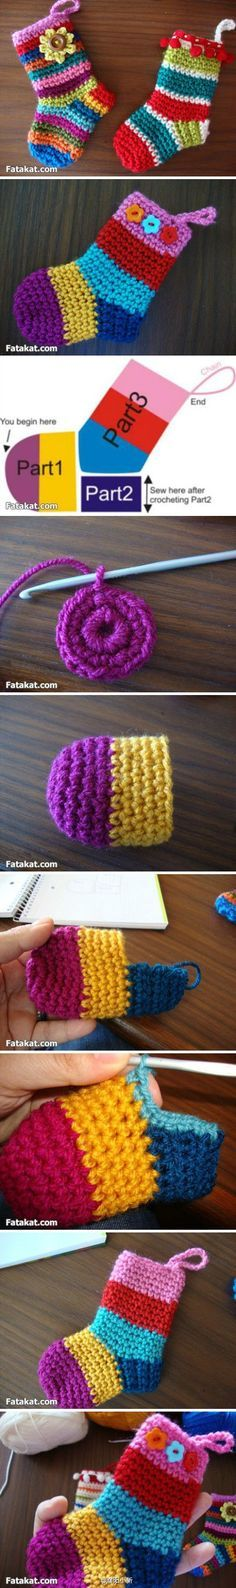 diy-crochet-baby-stocking